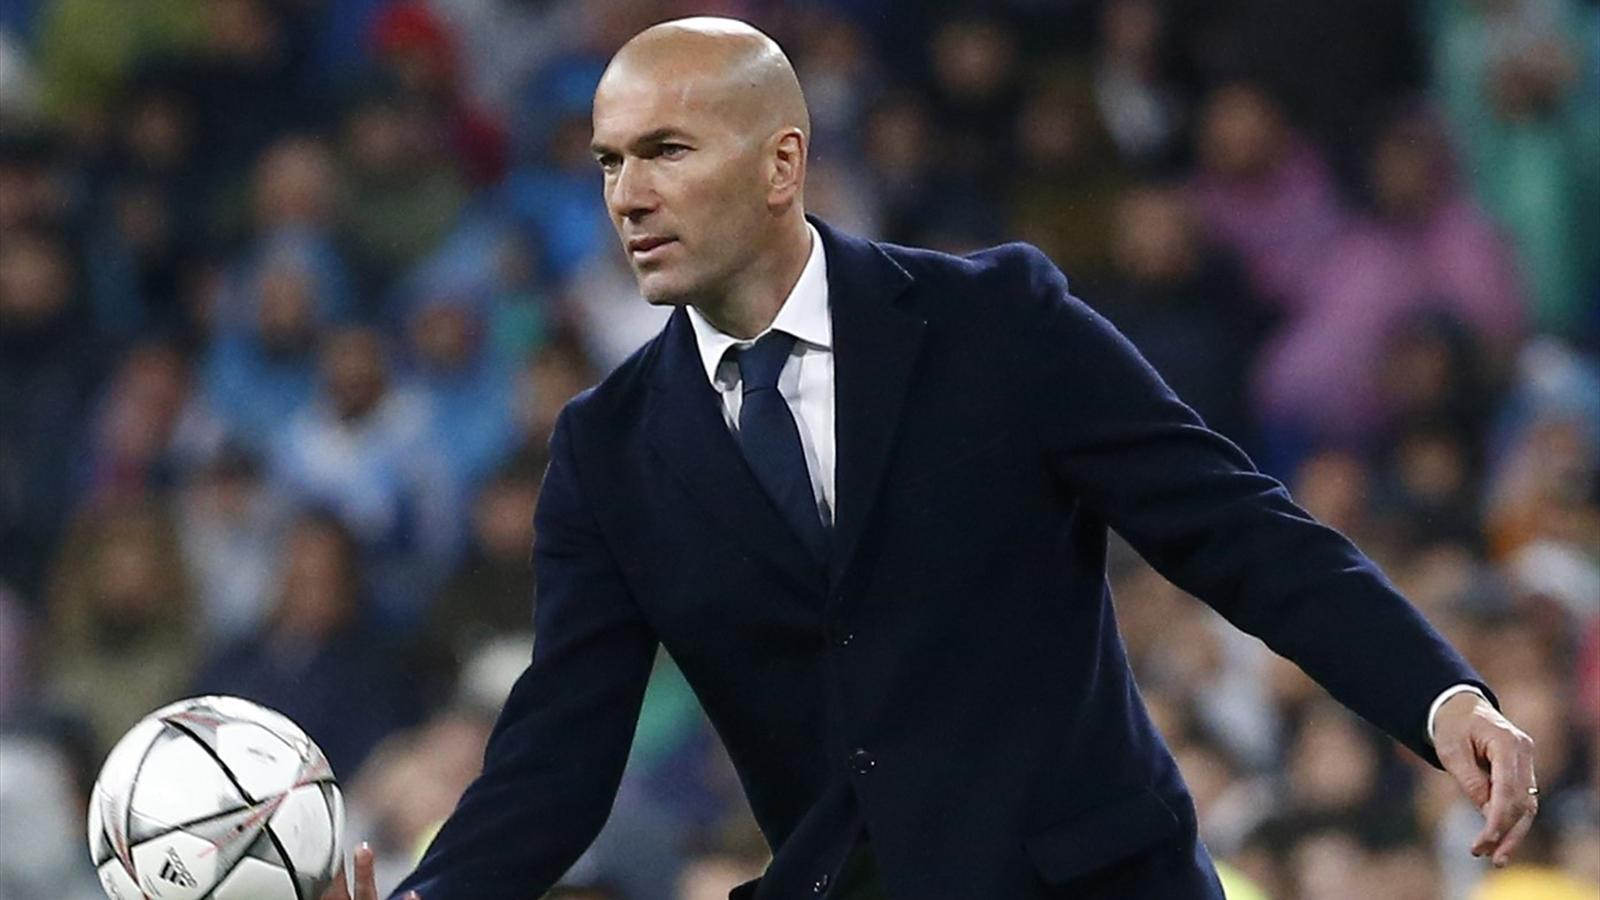 Zinedine Zidane: Real Madird can pip Barcelona to title in season finale - Liga 2015-2016 - Football - Eurosport Asia